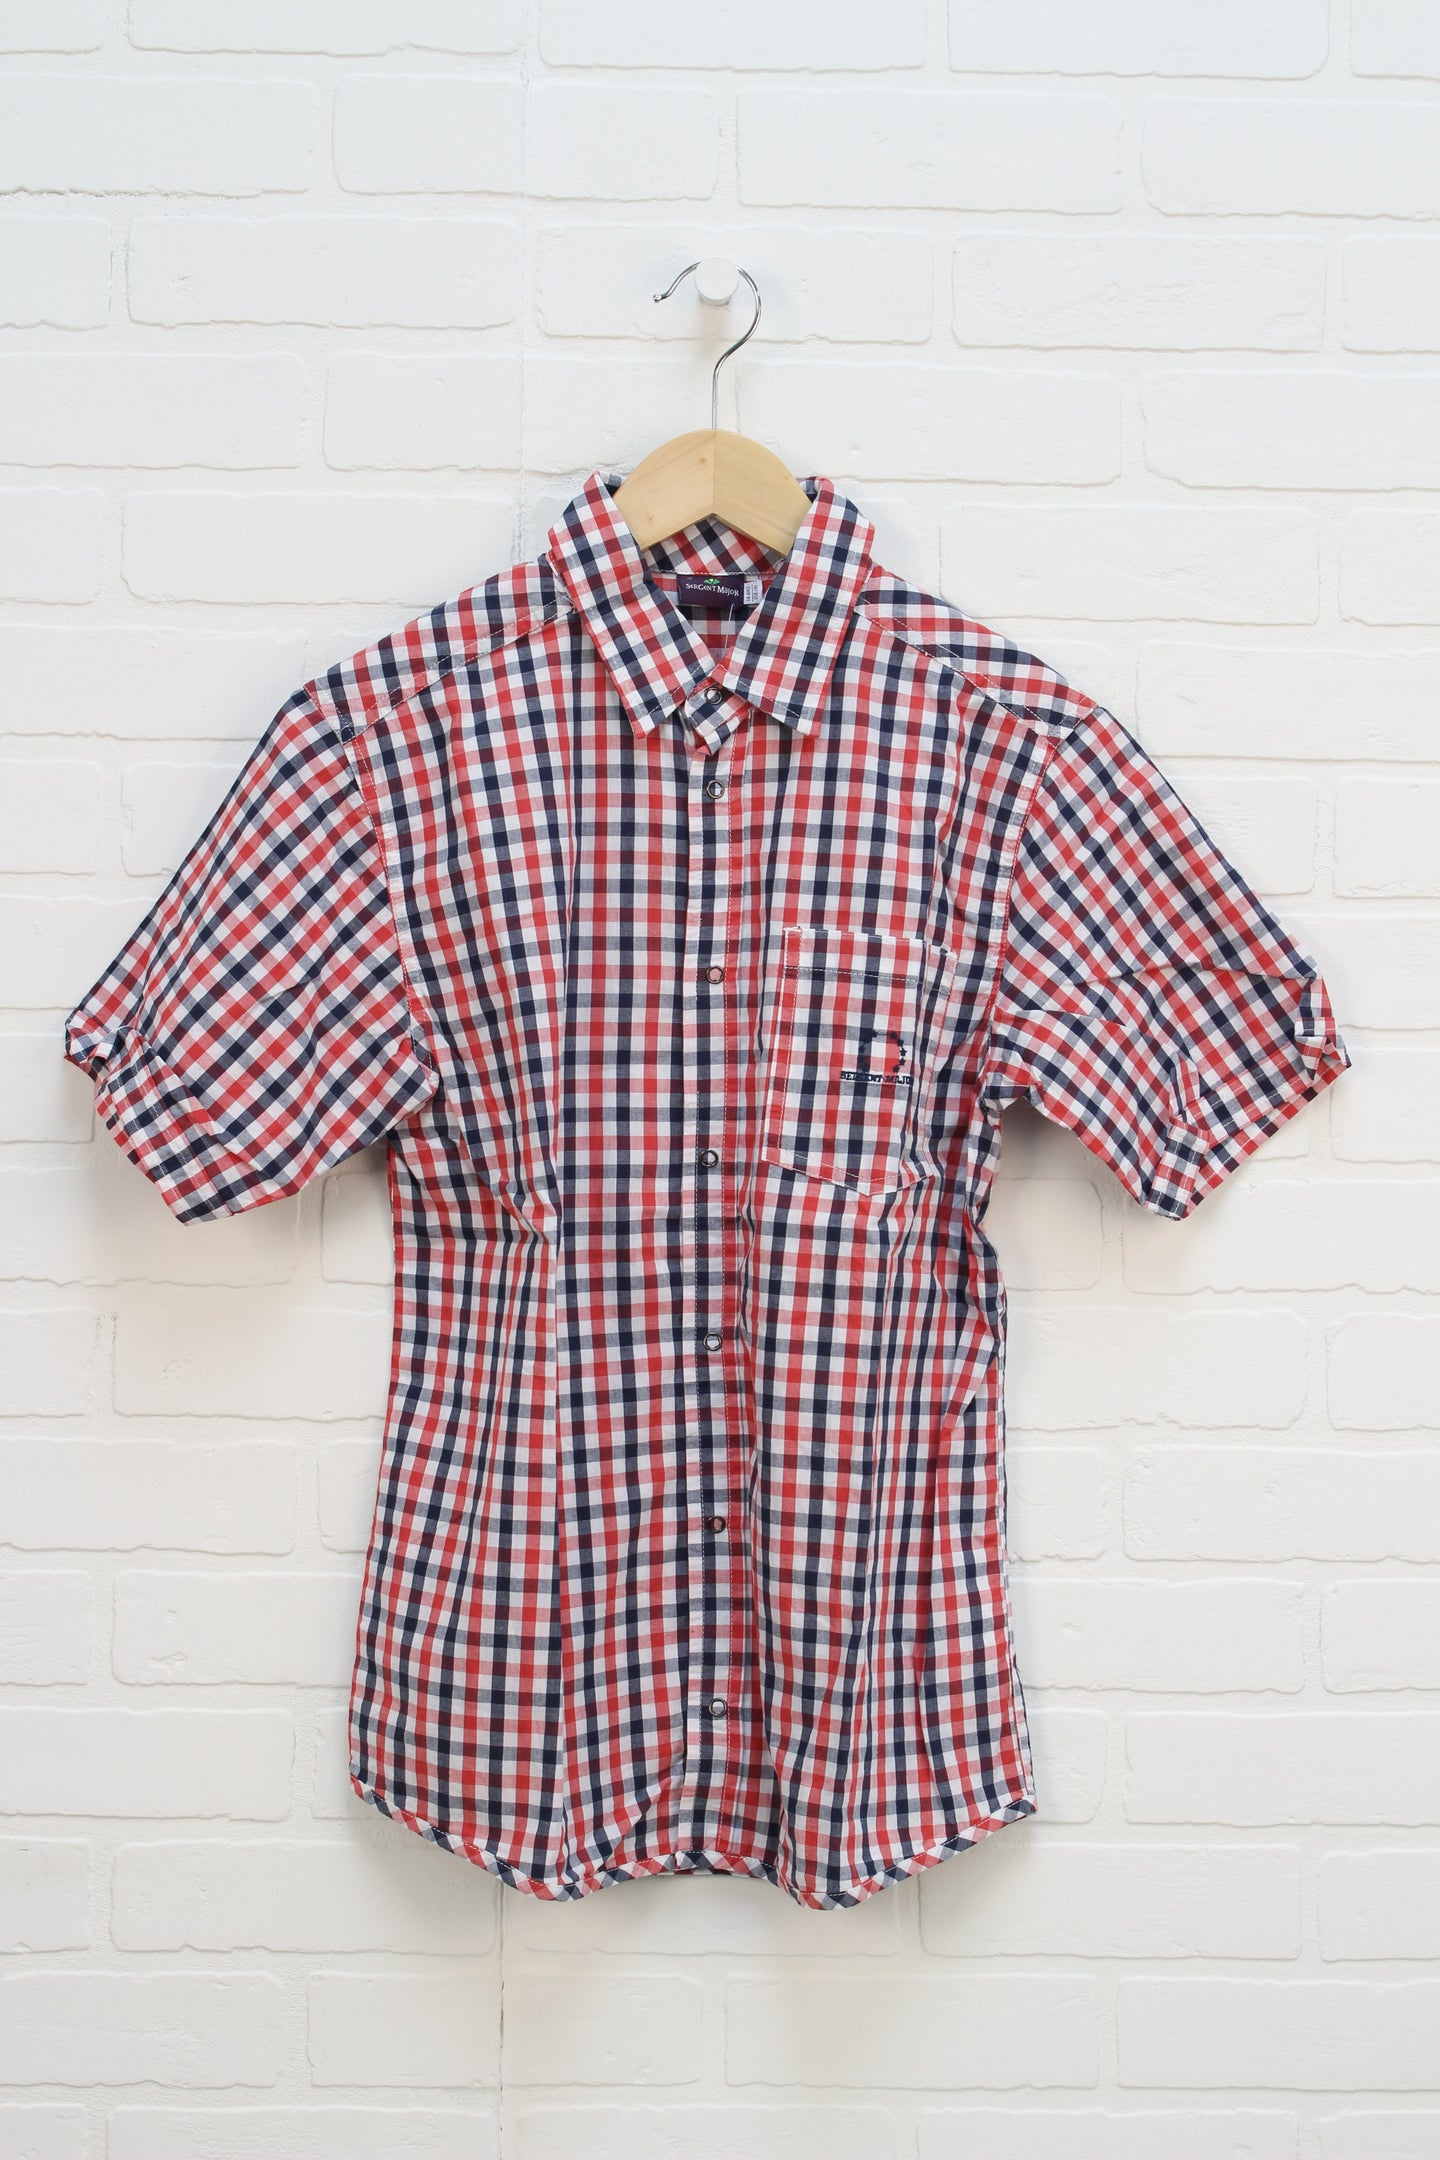 Red + Navy Gingham Top (Size 158/14)